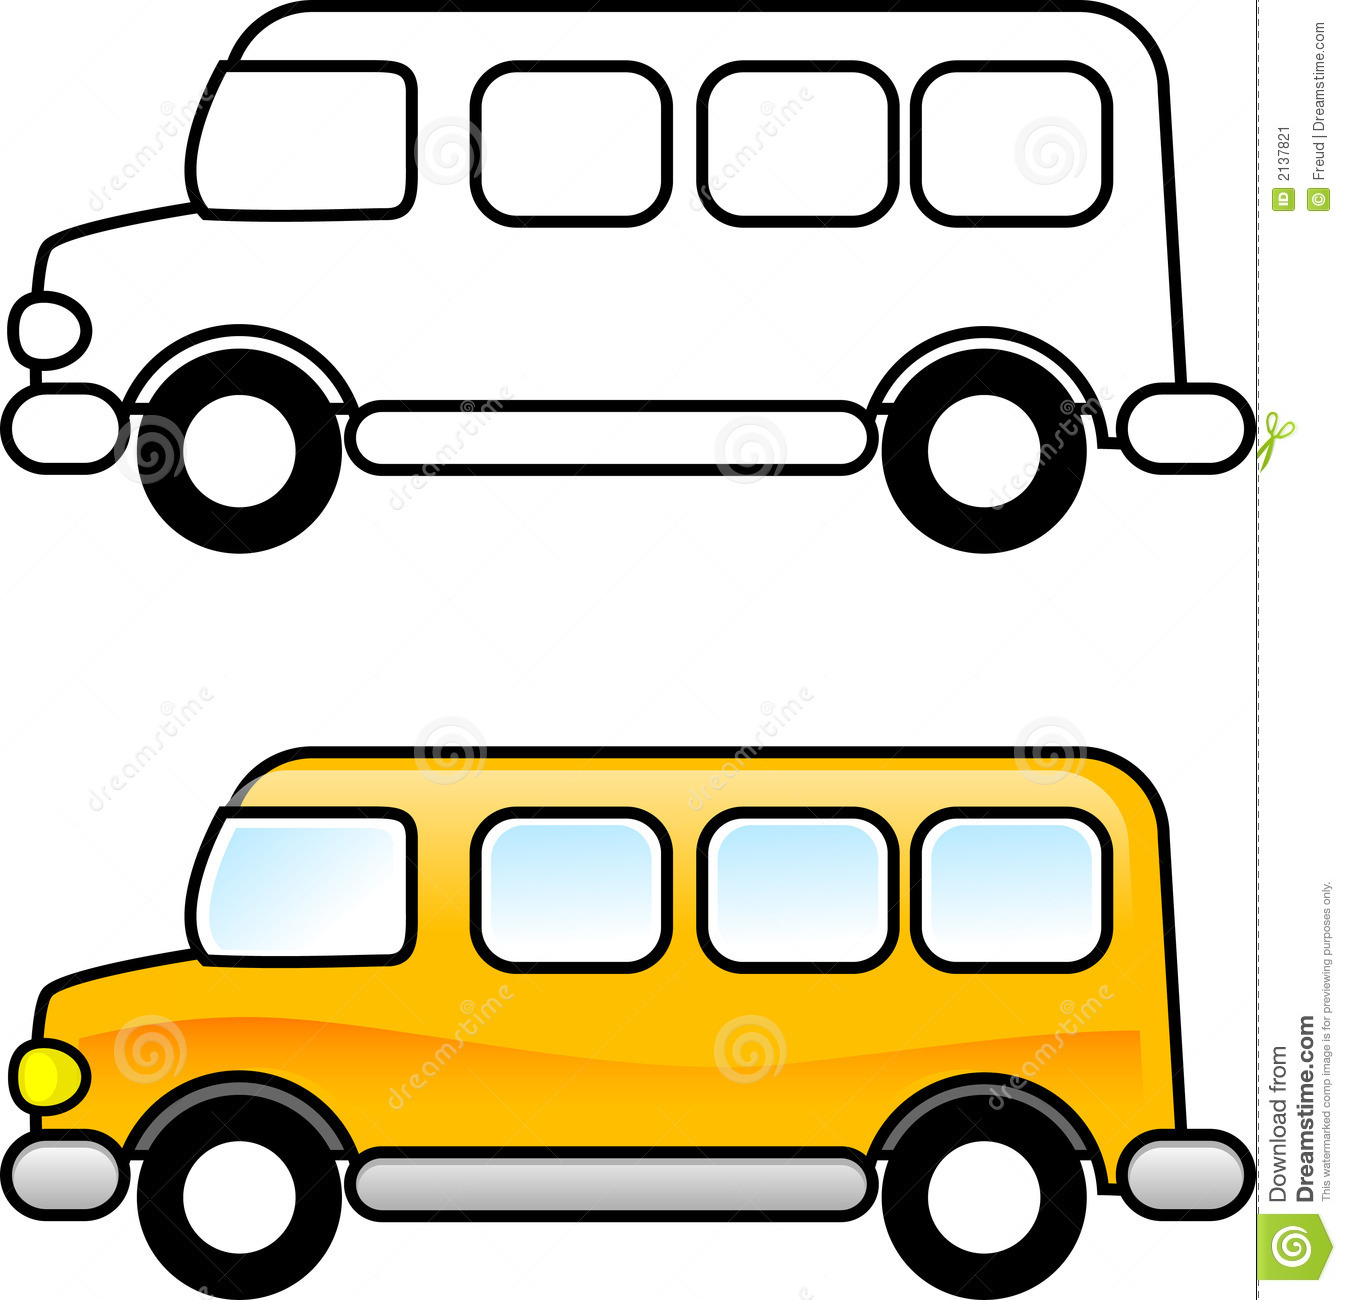 free clip art school bus clipart panda free clipart images rh clipartpanda com clipart school bus black and white clipart school bus field trip